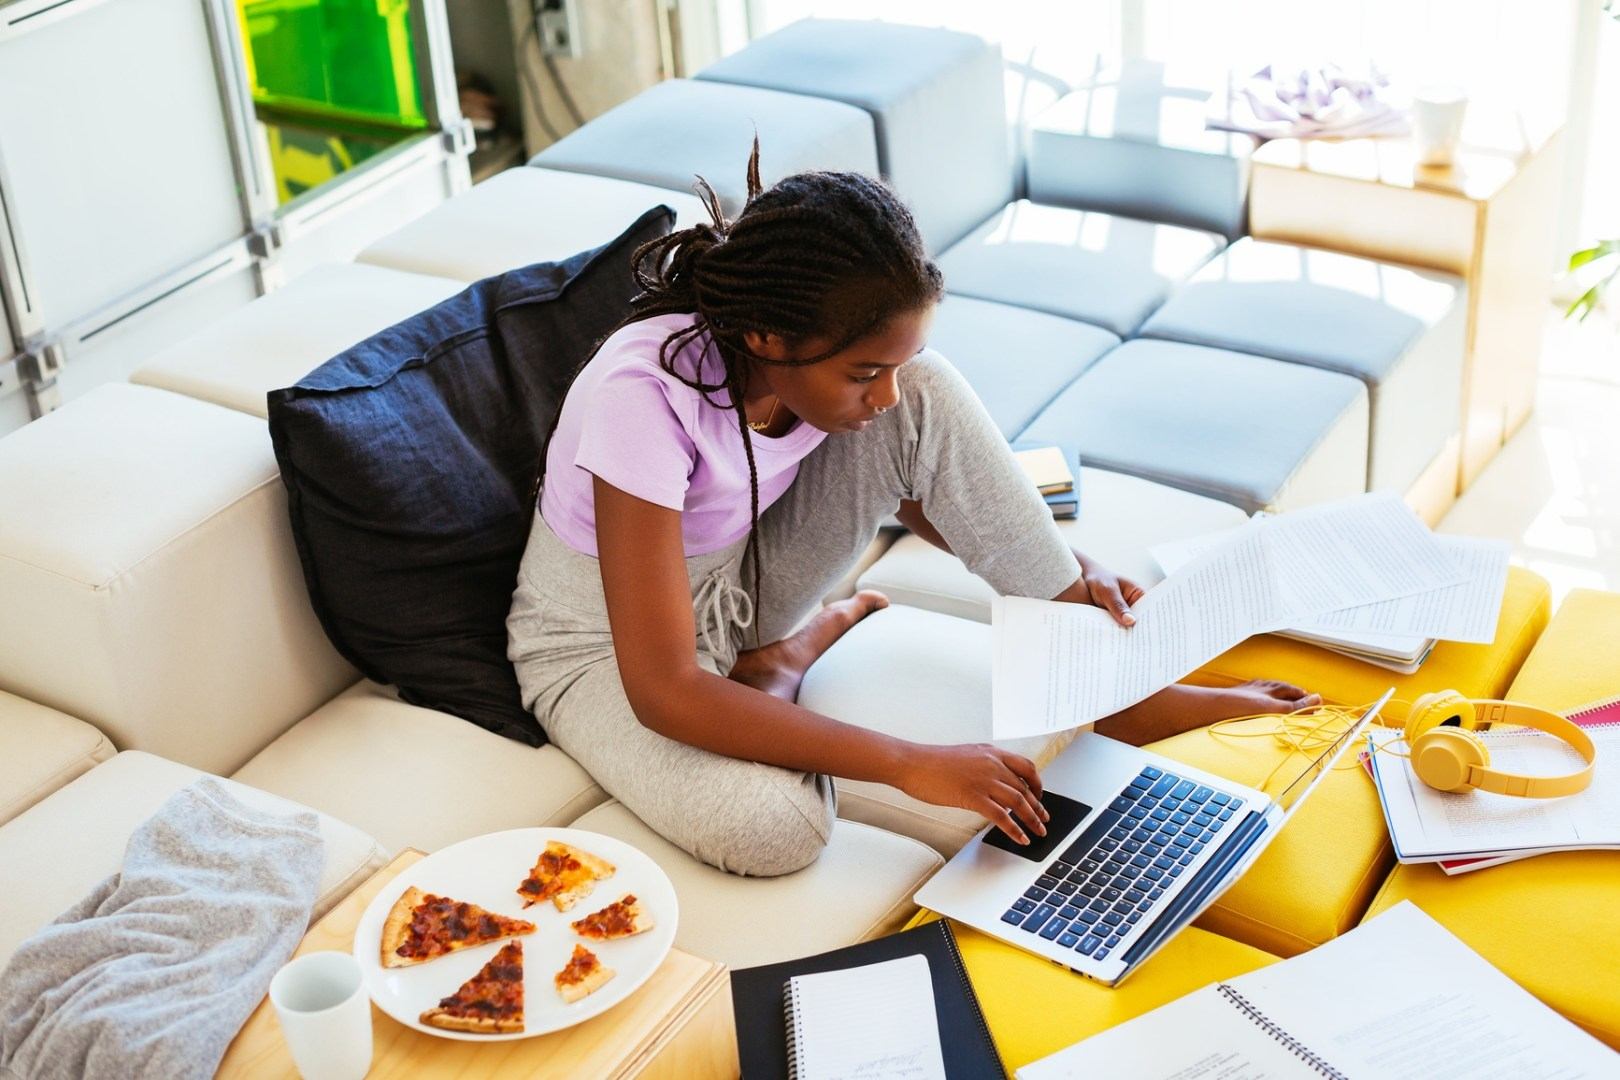 Black teen girl studying at home with her laptop and pizza